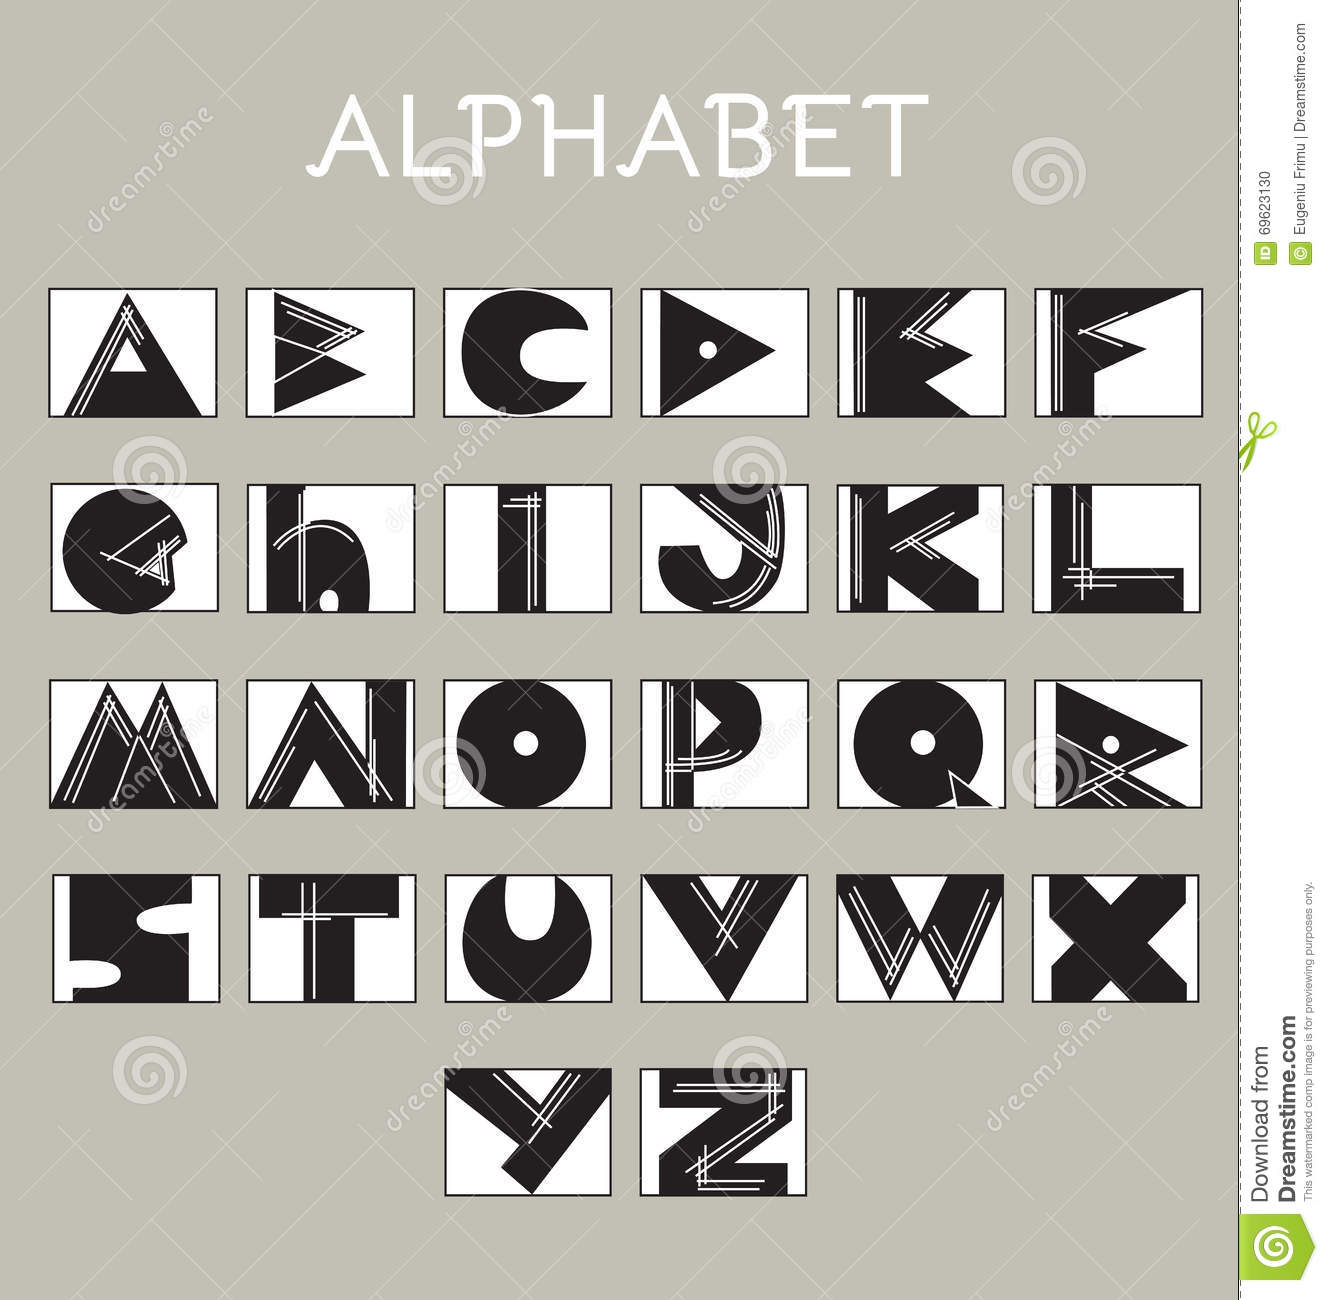 Sketchy Alphabet Letters In Various Colors Geometrical Typography Conceptual Sign Modern Letterform Digital Vector Illustration On Gray